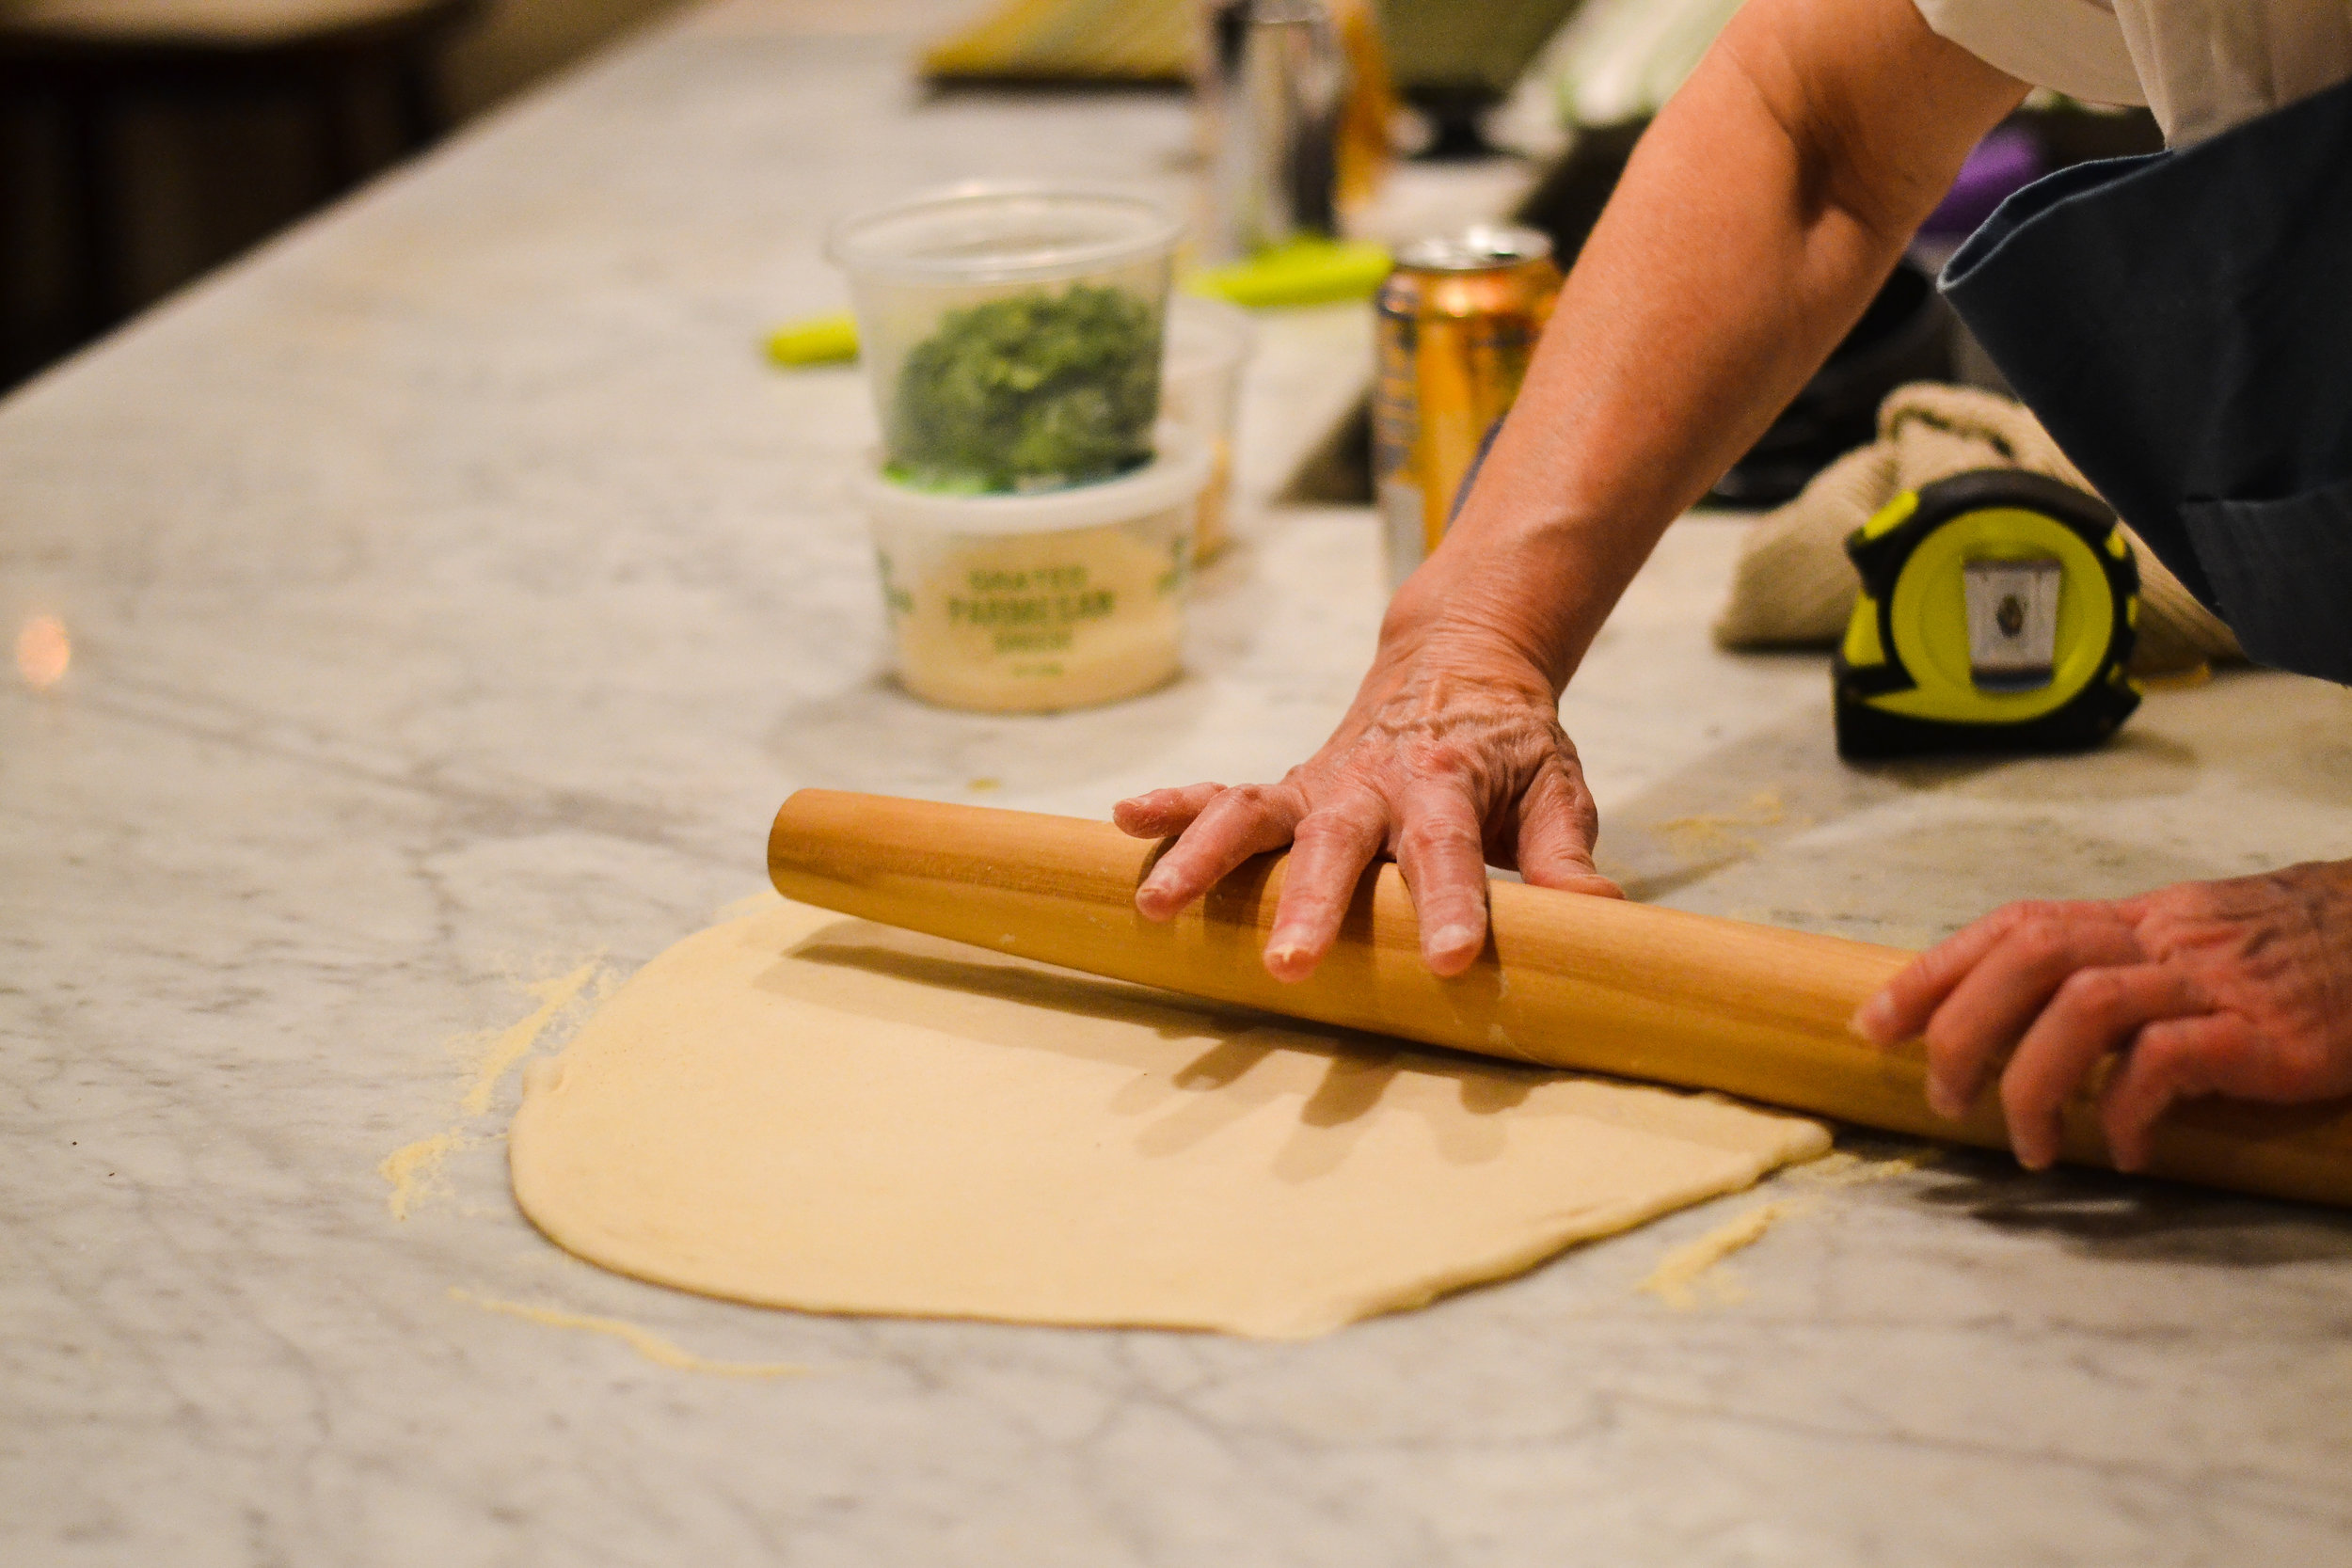 UPCOMING COOKING CLASSES - Cooking classes make the perfect date night, girls' night out or even time for yourself. Grab a glass of wine and come learn in my kitchen!